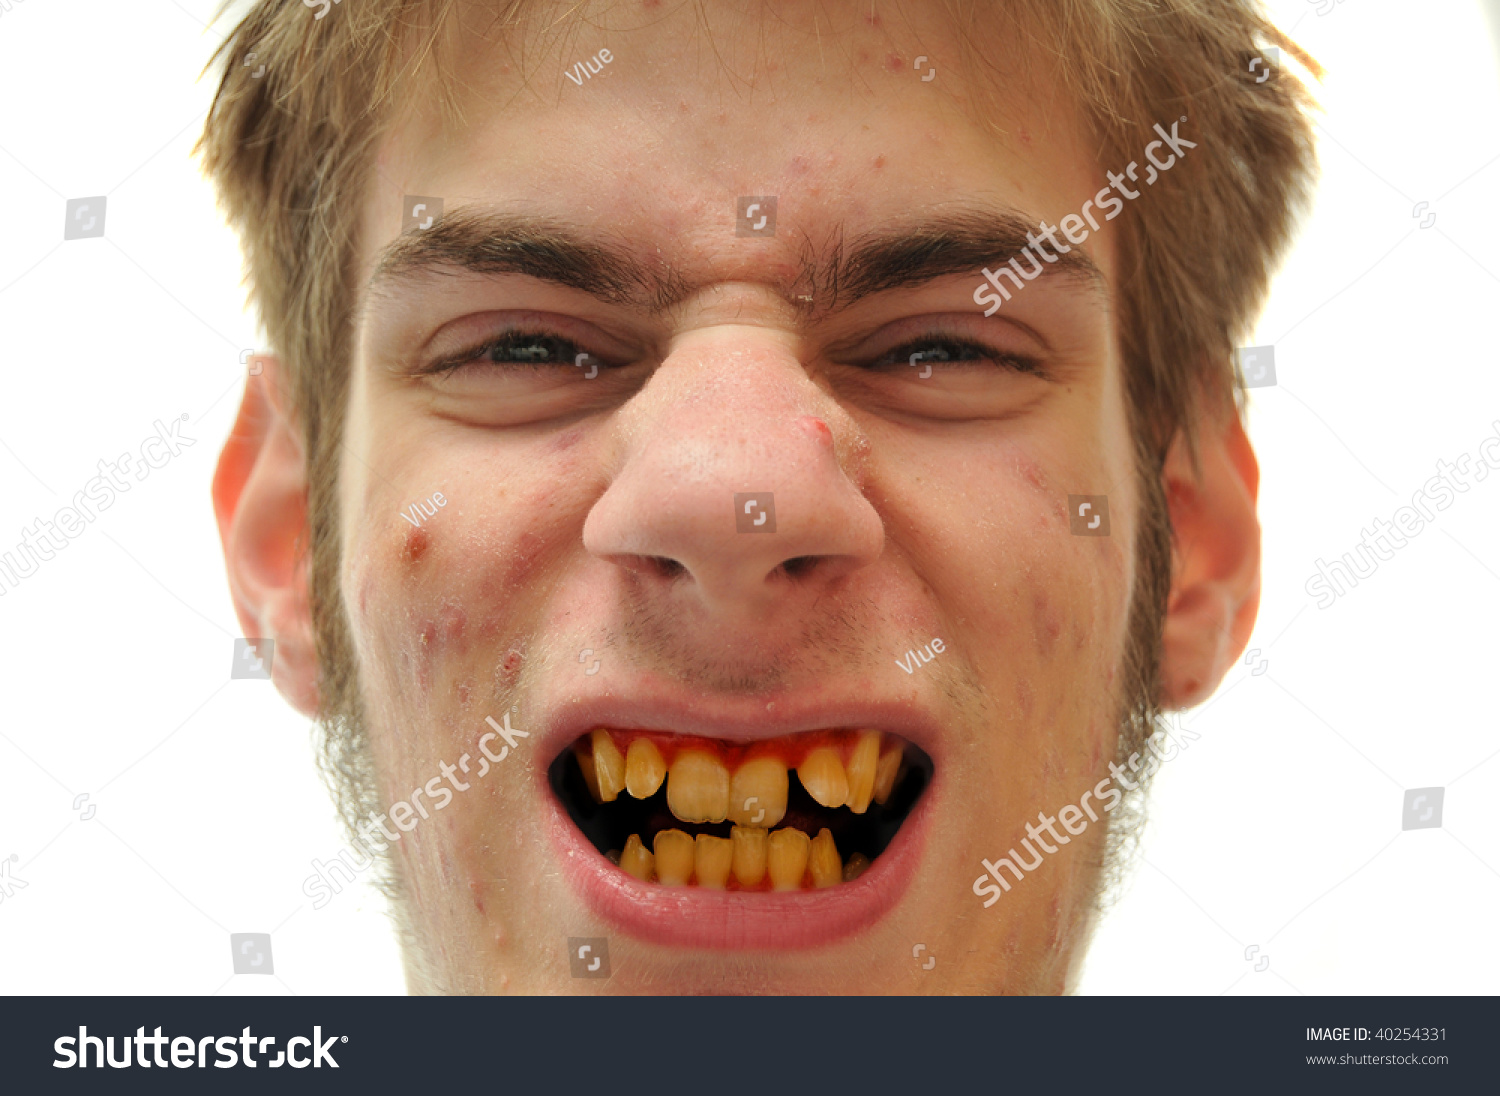 Dating a man with bad teeth